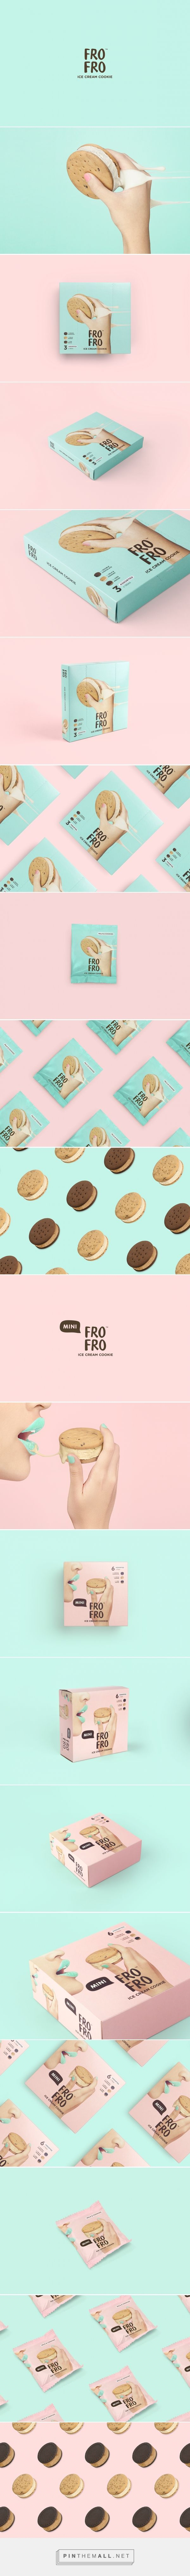 FRO FRO cookies packaging design by Bravo (Singapore) - http://www.packagingoftheworld.com/2016/08/fro-fro.html